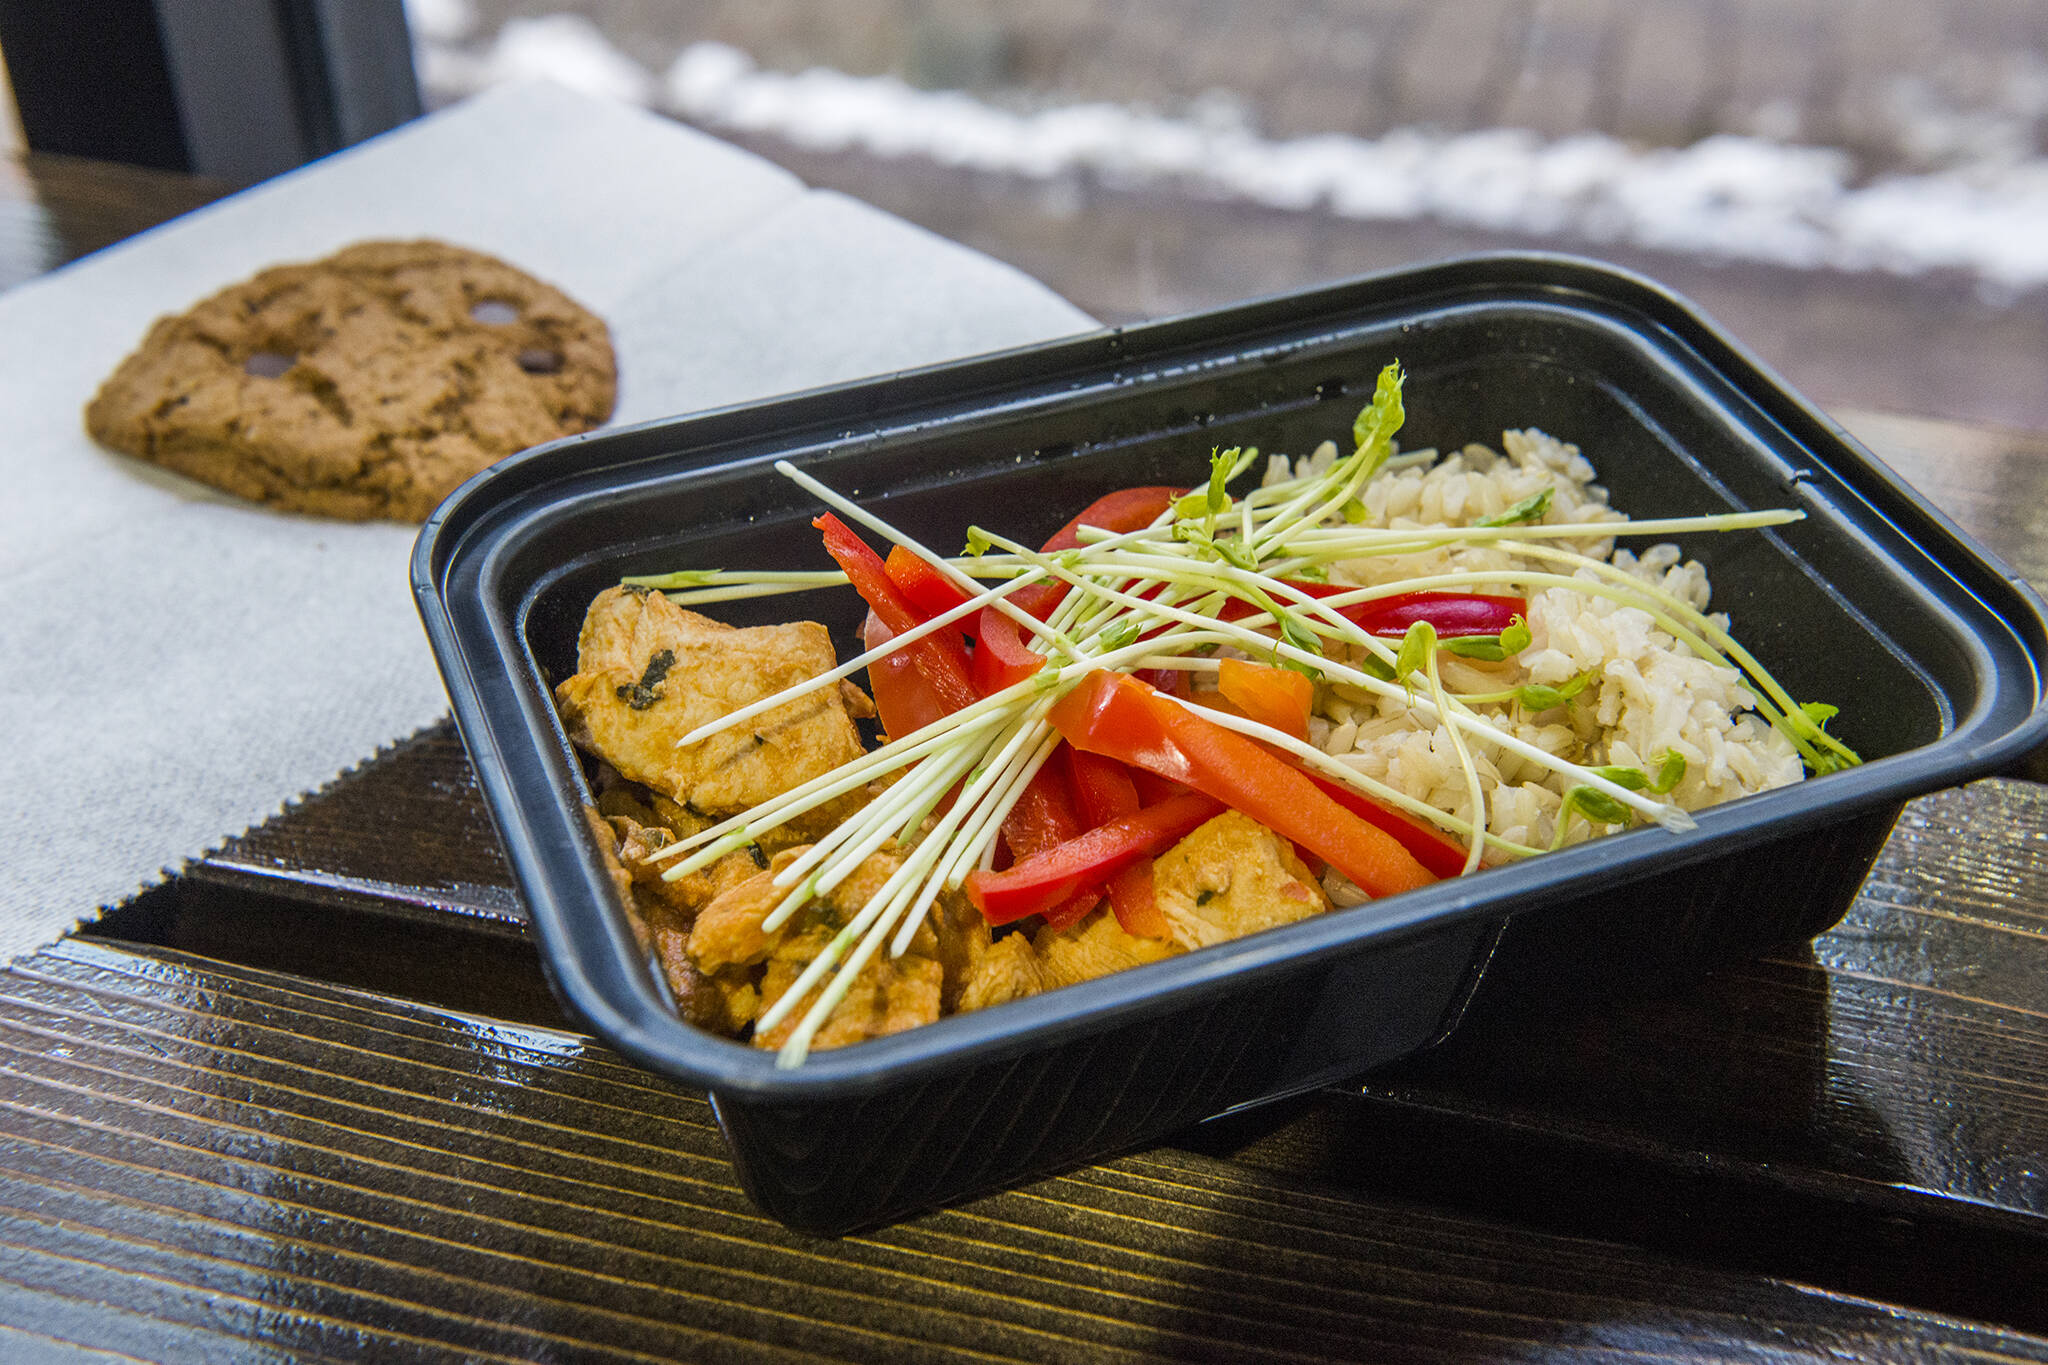 The Top 10 Prepared Meal Delivery Options In Toronto